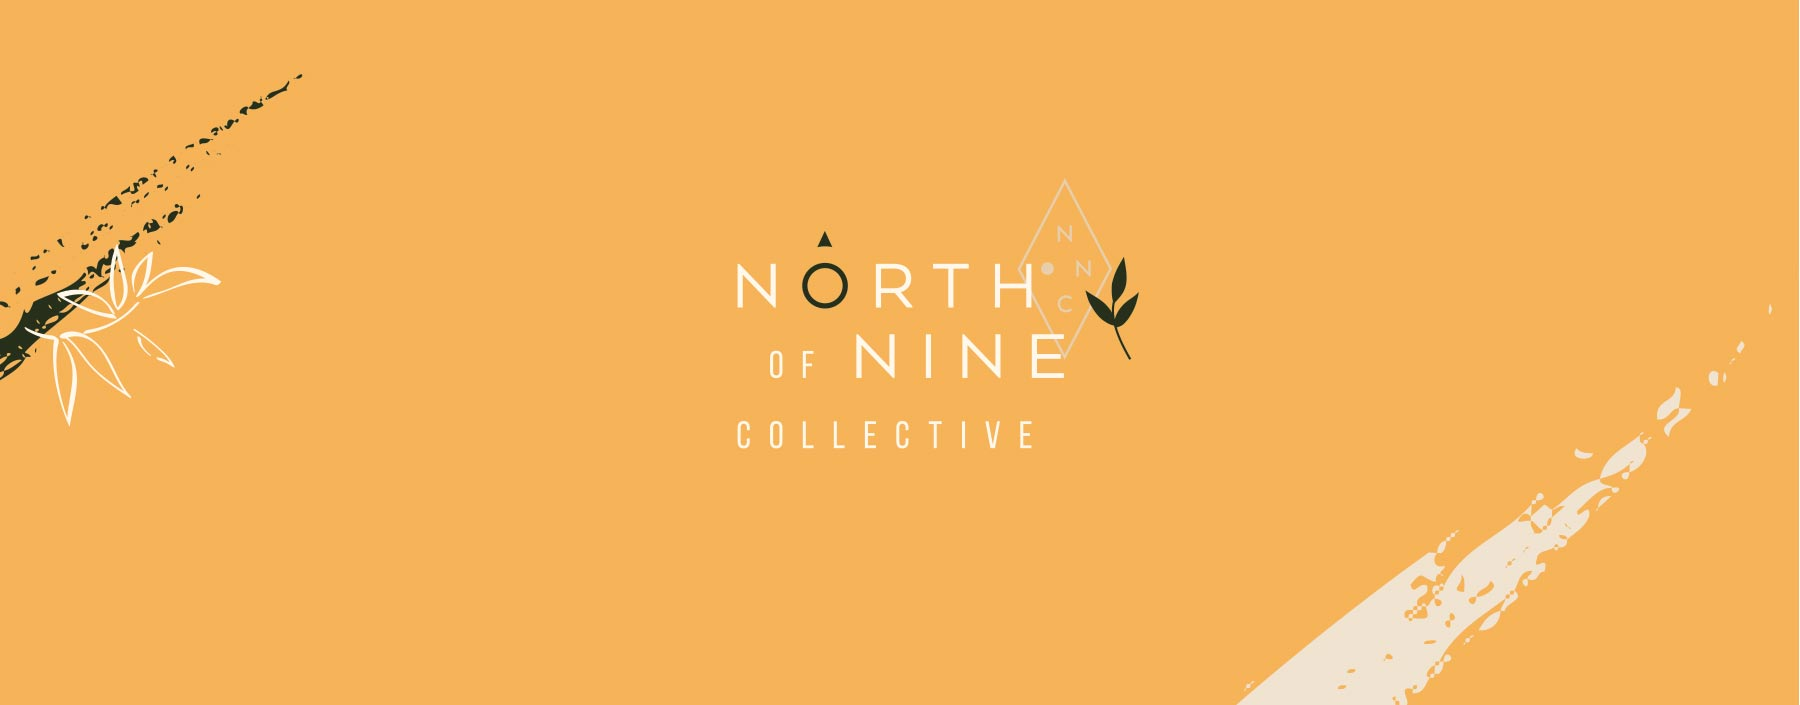 North of Nine Collective primary logo design, created by Lisa Furze